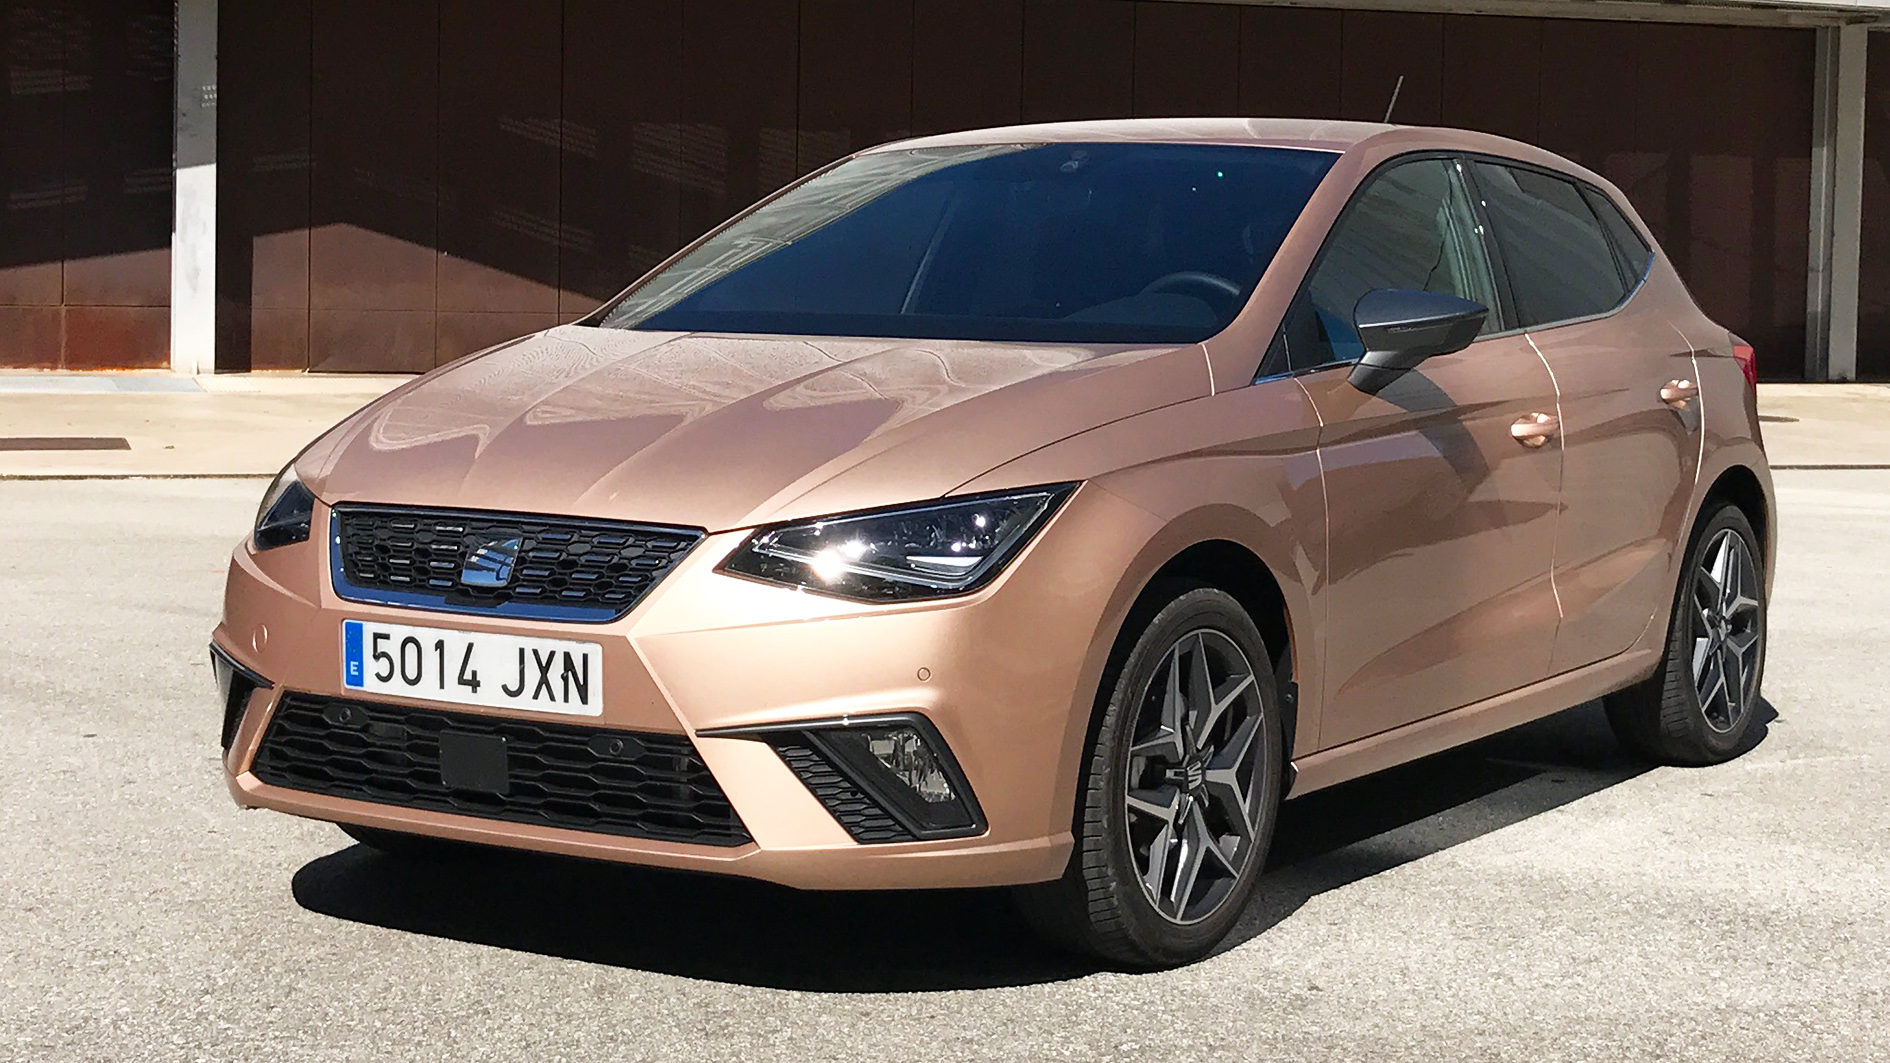 seat ibiza 1 0 tsi 115 ps test fahrbericht auto deutsch die autovideo. Black Bedroom Furniture Sets. Home Design Ideas